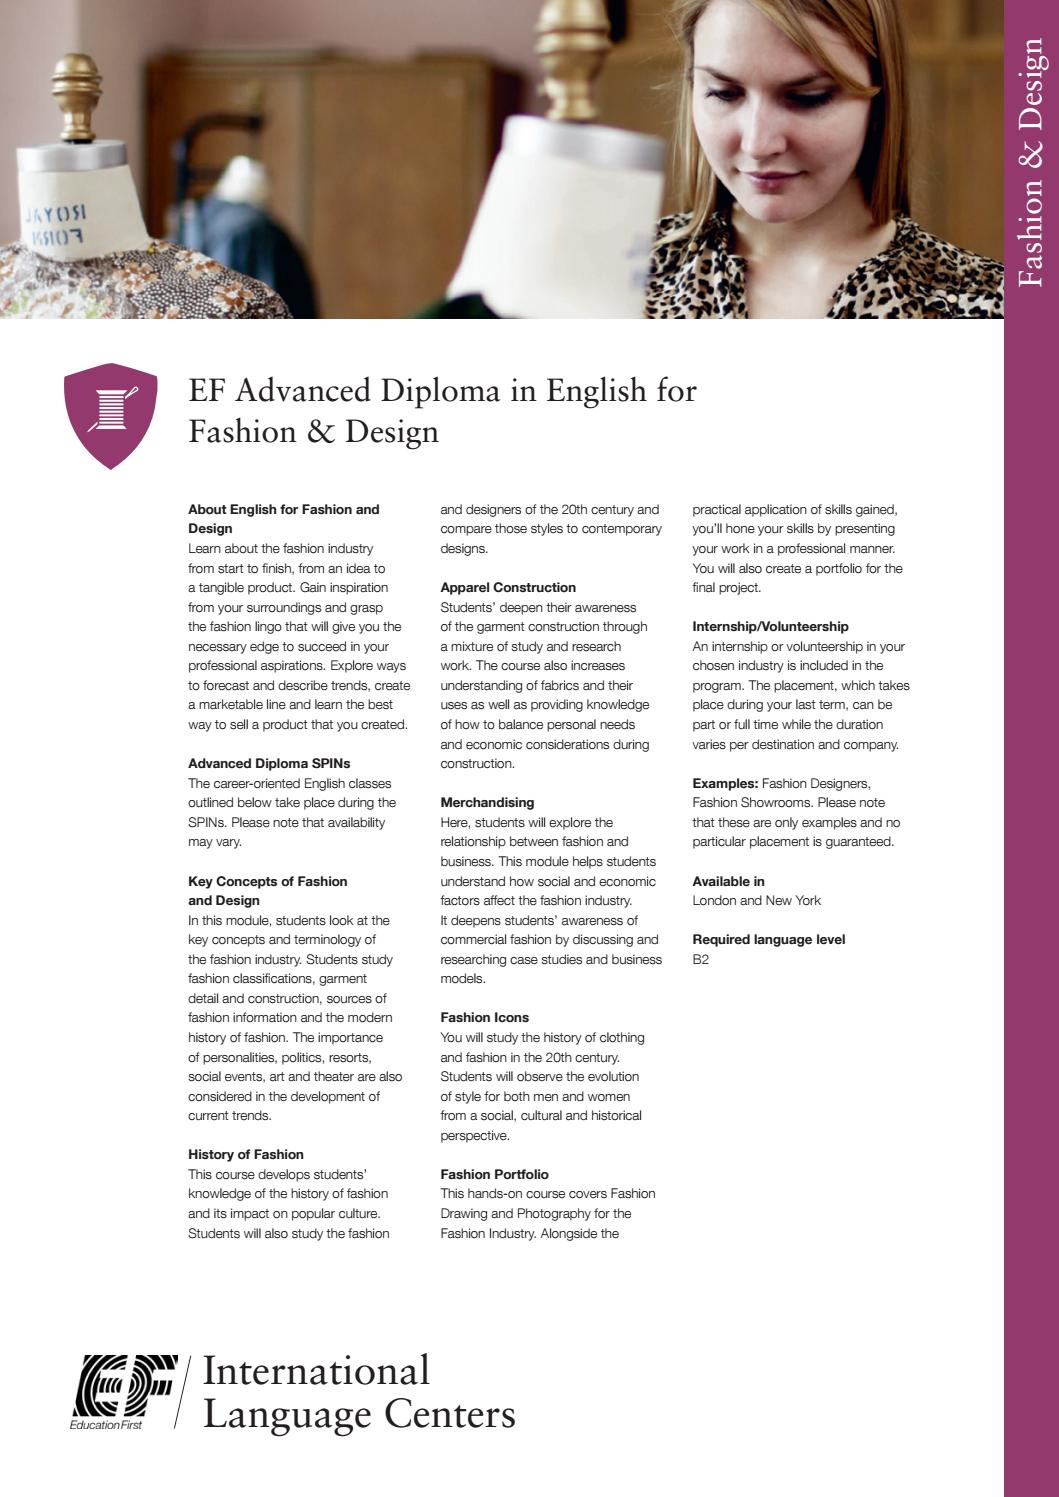 14ay Ad Fashion Design By Ef Education First Issuu